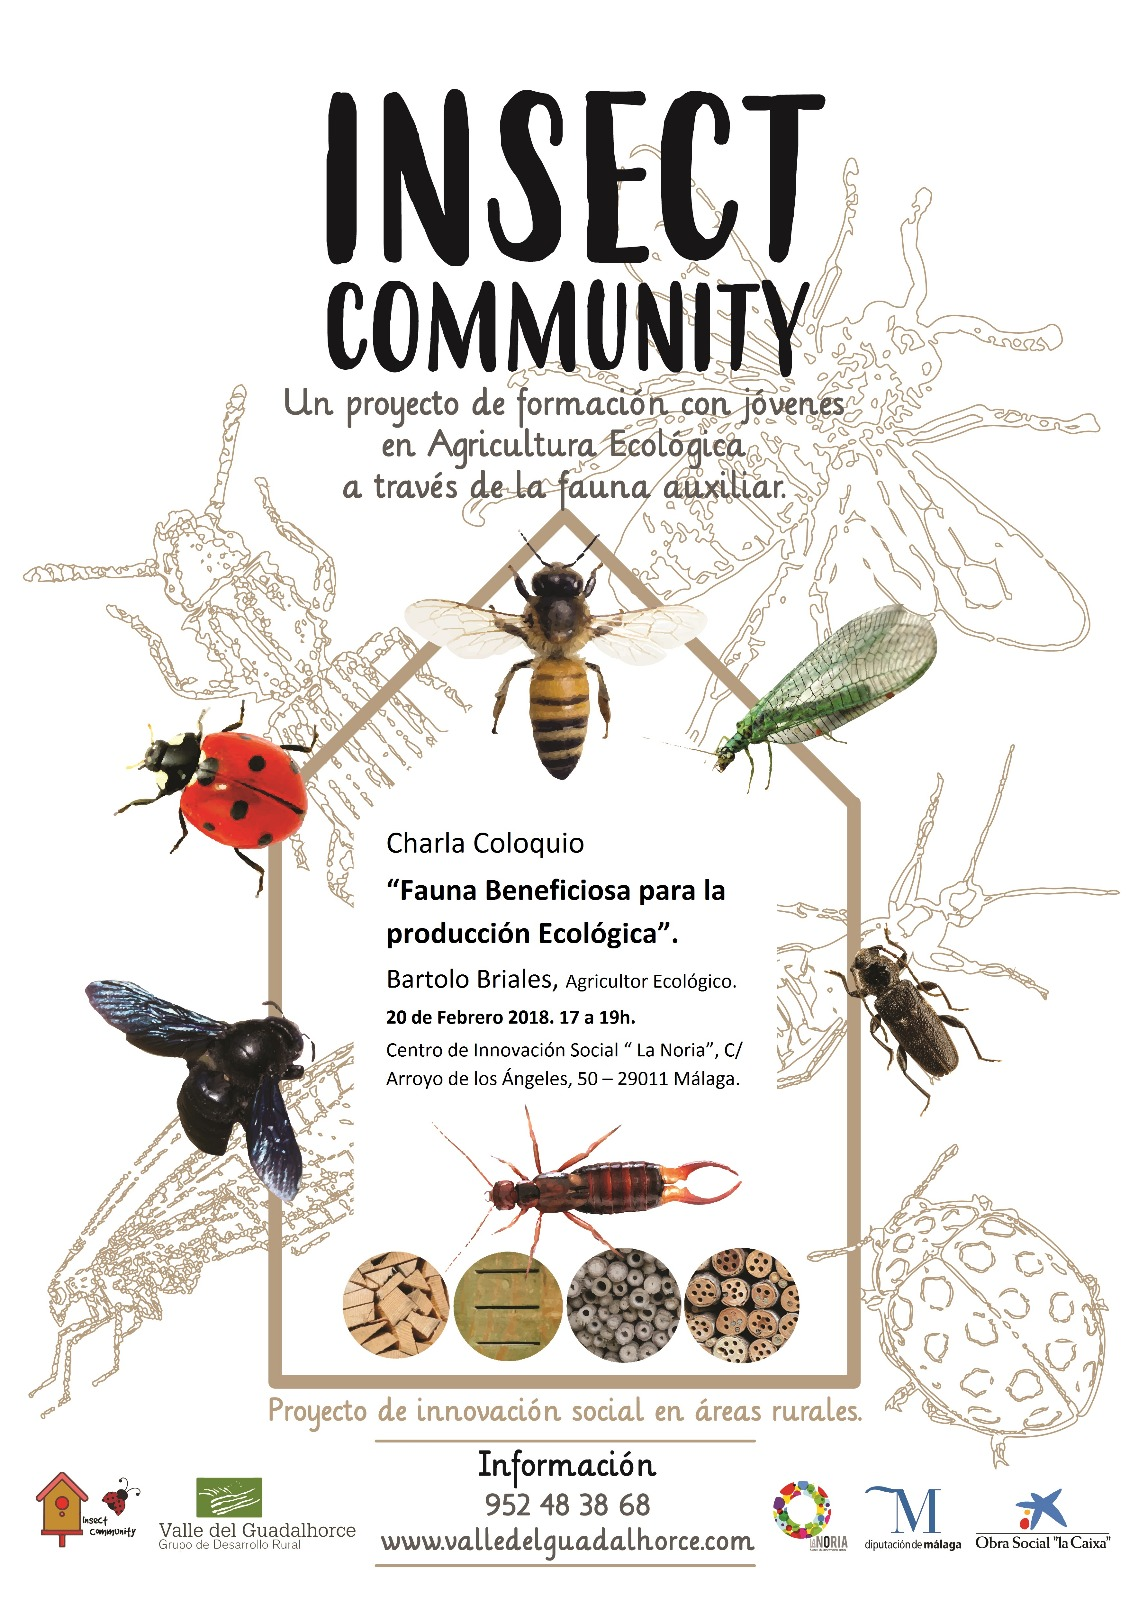 Insect Community